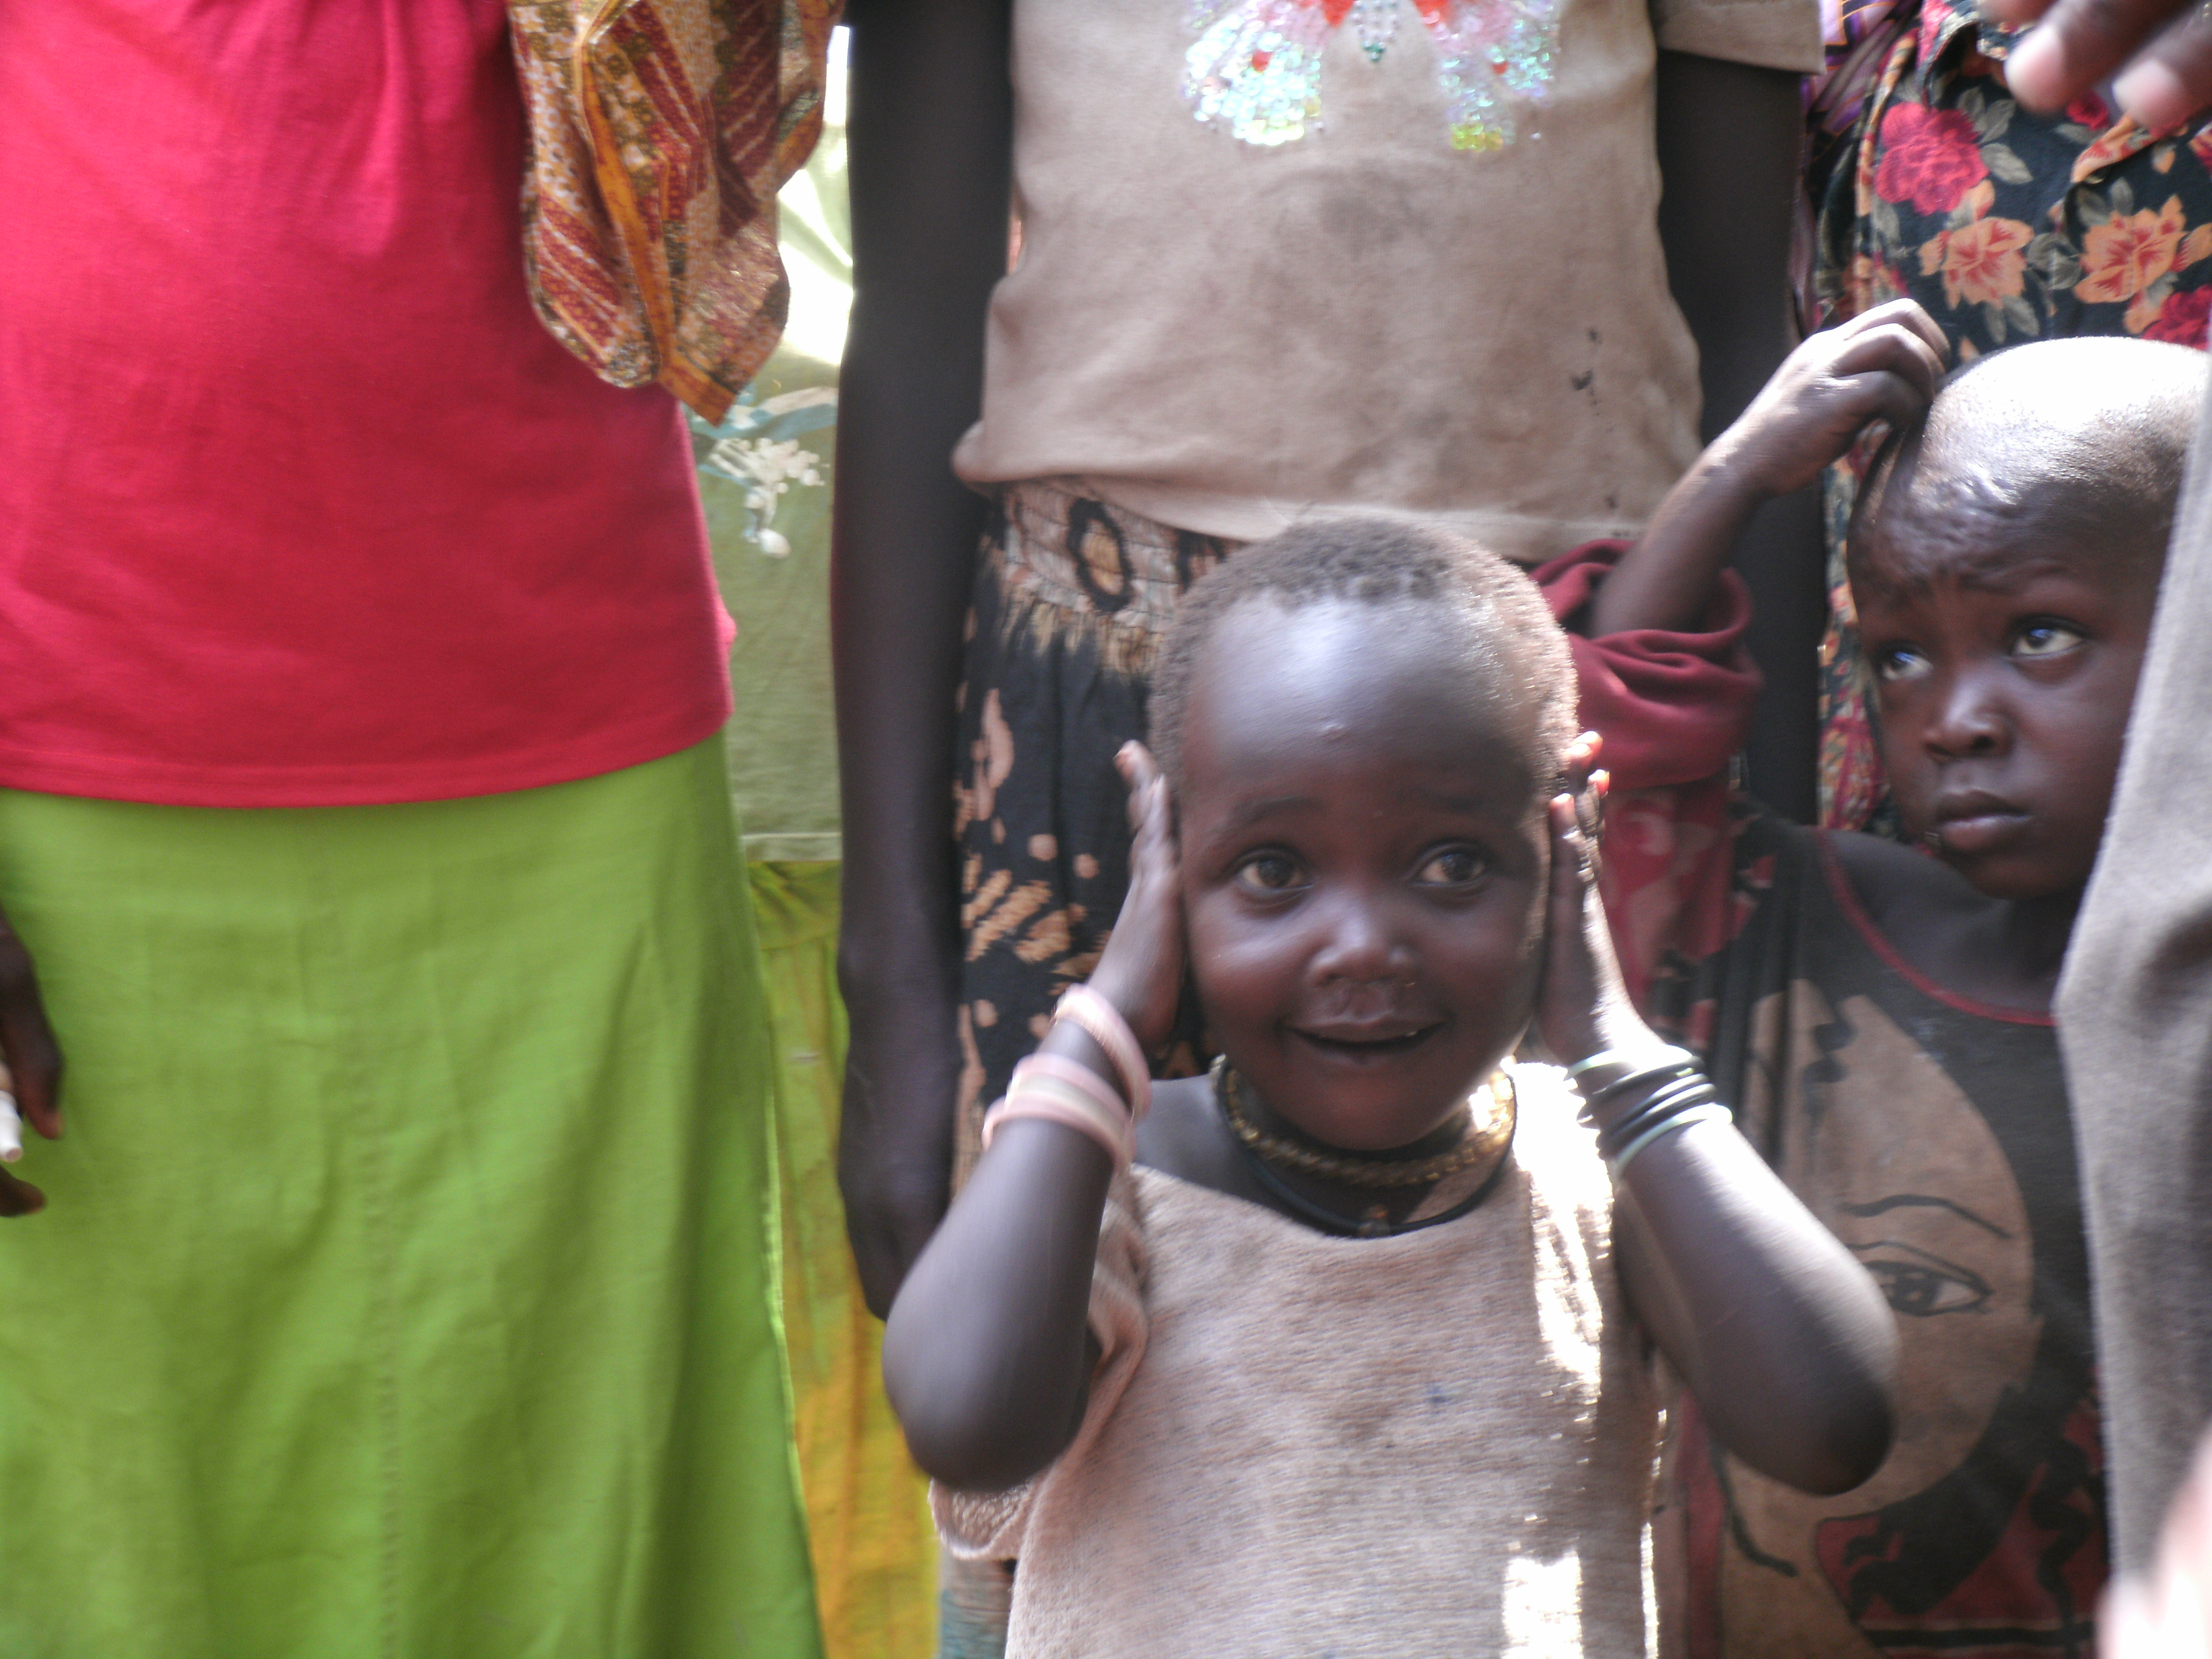 Every Child Ministries aids a pastoral people in Uganda